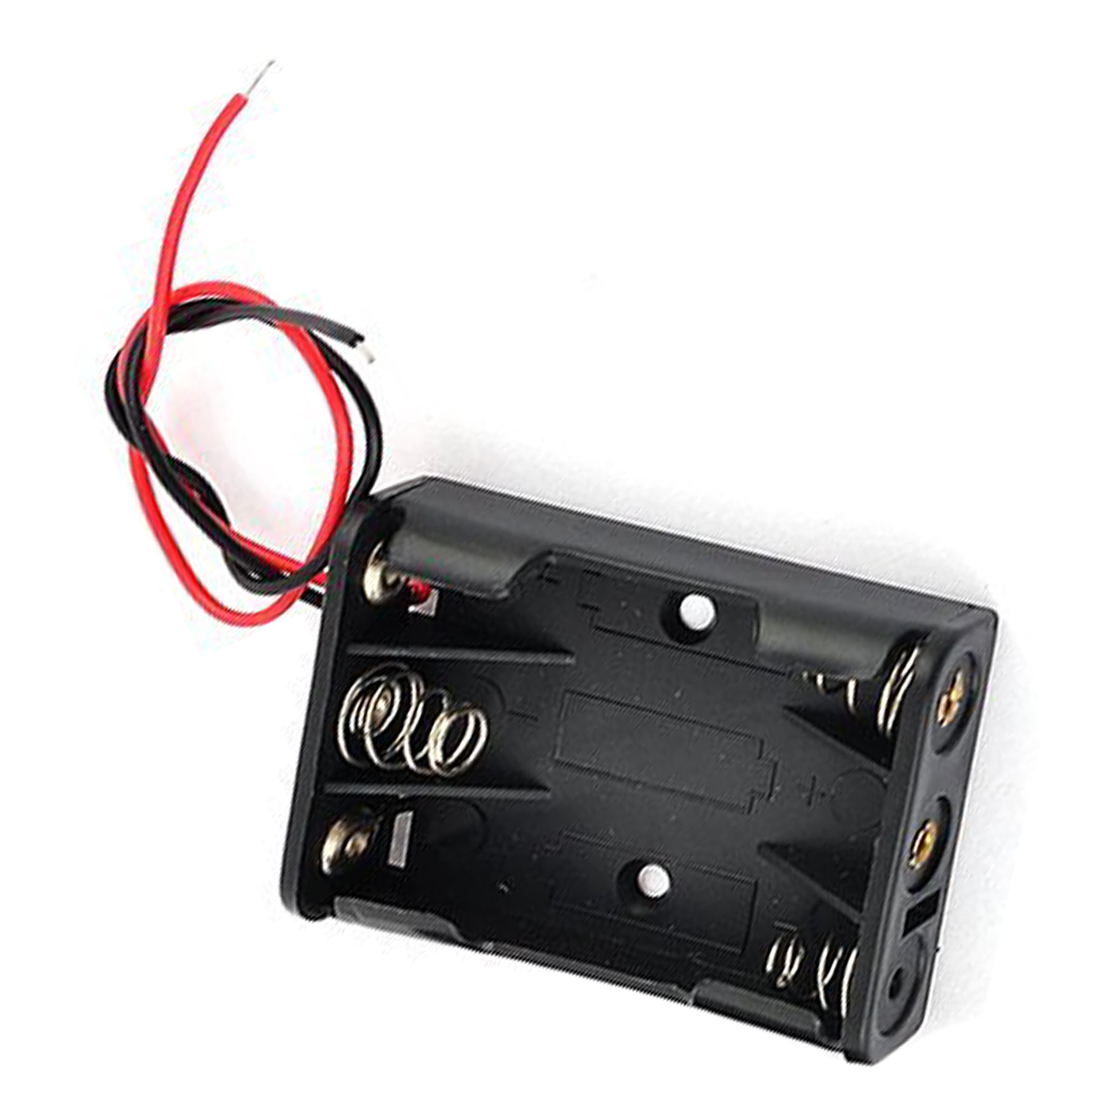 Aodesy 5 x 1.5V AA Battery Batteries Holder Case w Wires Lead Black,Pack of 5